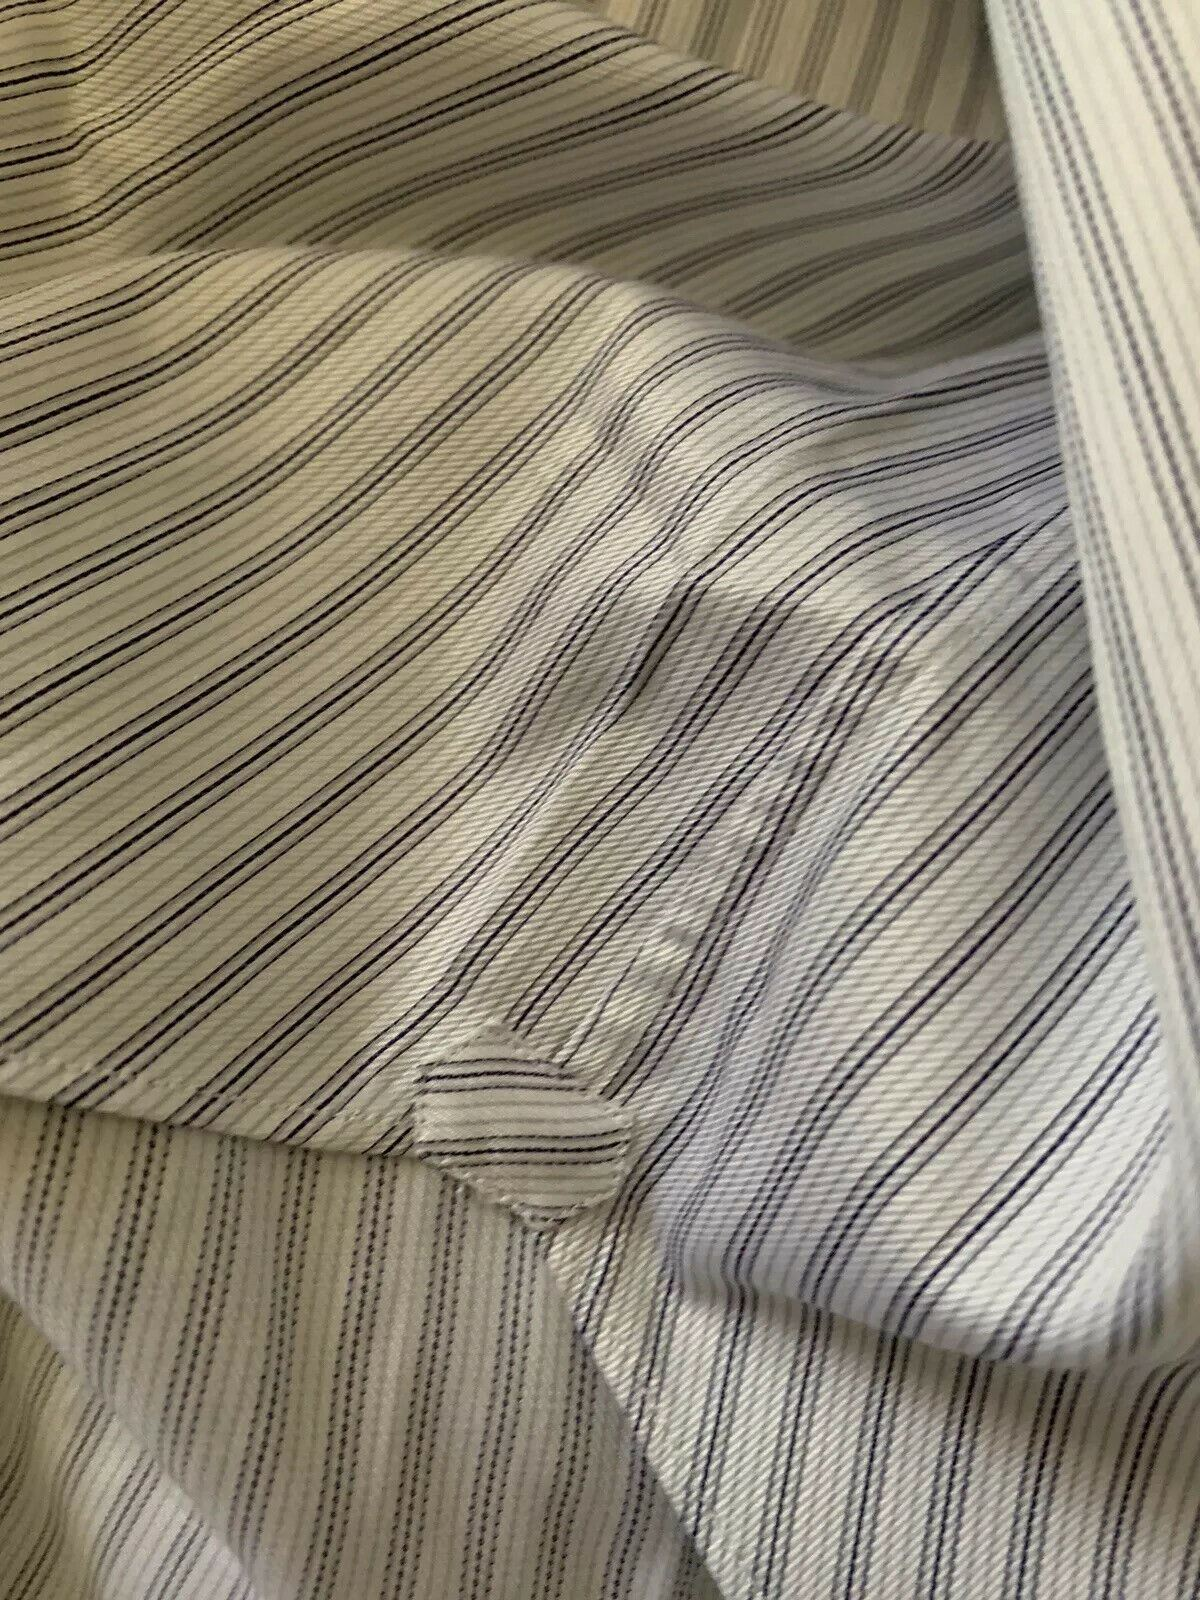 NWT $525 Brioni Mens Dress Shirt Gray Size 43/17 Italy